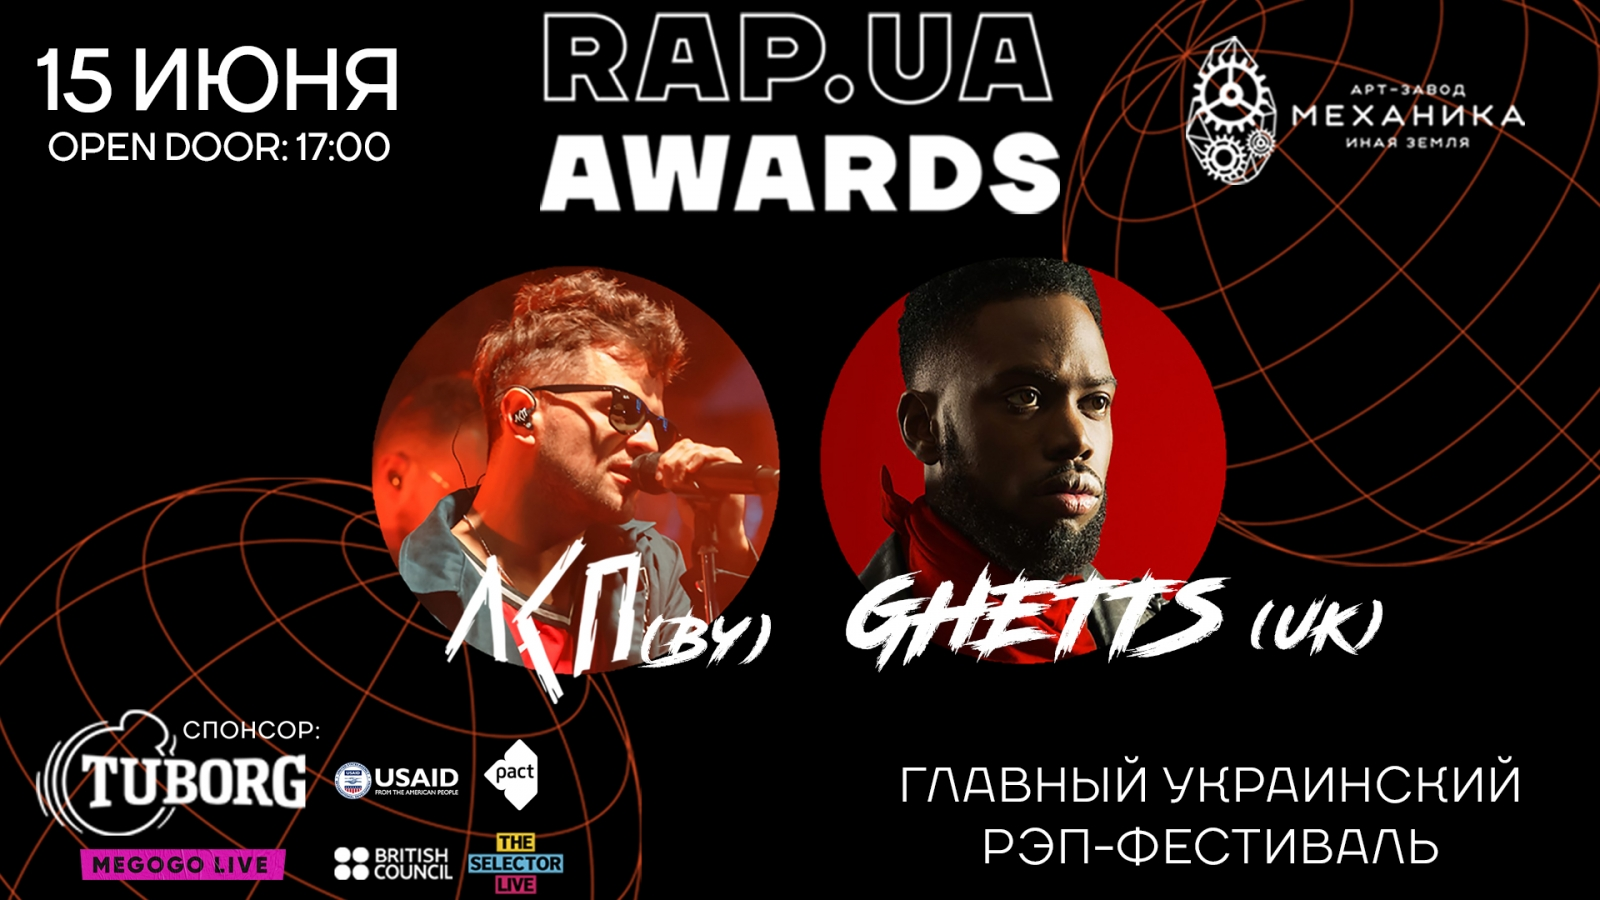 RAP.UA AWARDS 2019